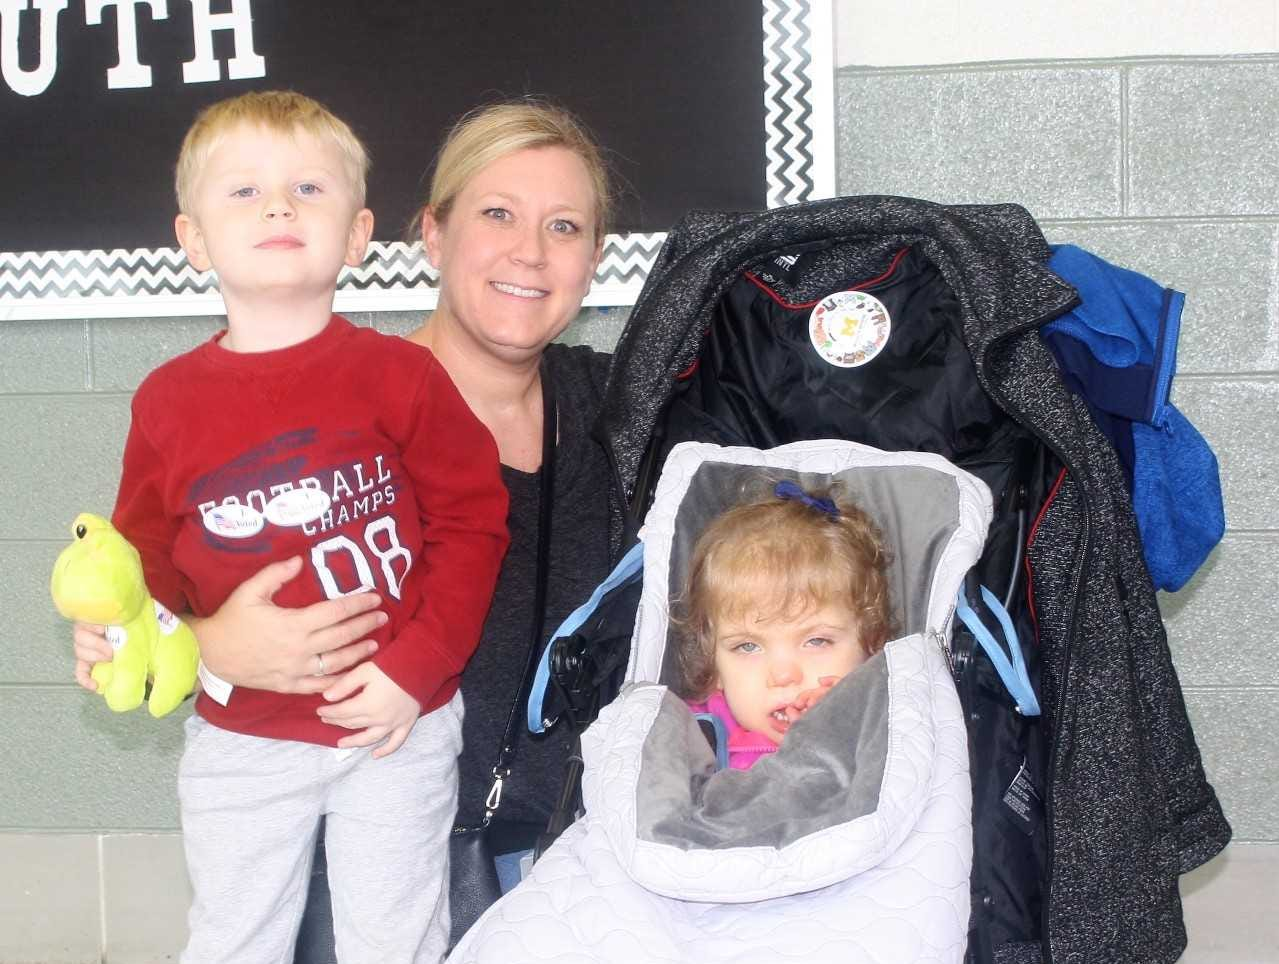 Marie Alpier is pictured with her childen Nicholas and Brynn after she voted at Plymouth High School.